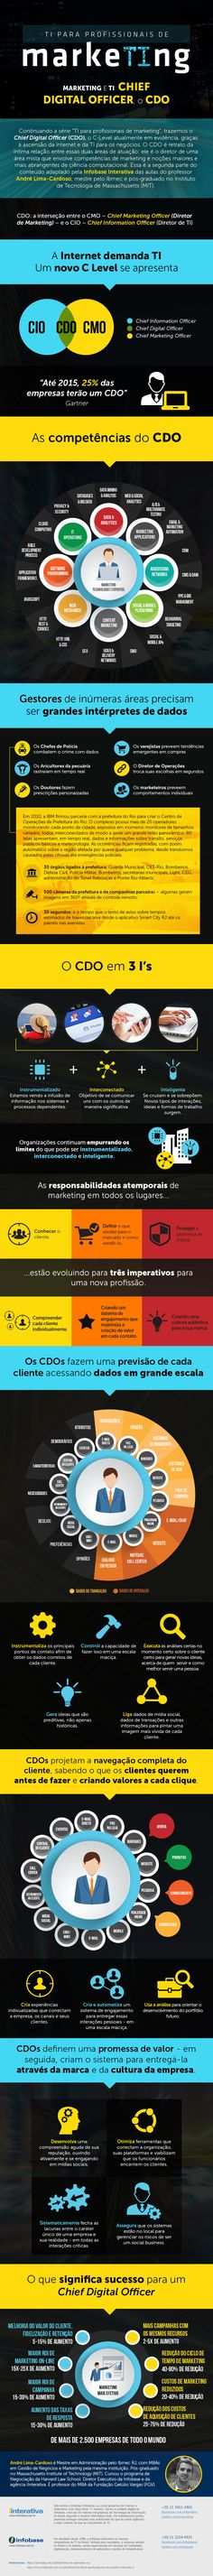 Infográfico – TI para profissionais de marketing – Chief Digital Officer, o CDO http://www.iinterativa.com.br/infografico-ti-para-profissionais-de-marketing-chief-digital-officer-cdo/#cYZ0tYEWuU8XfR6w.99